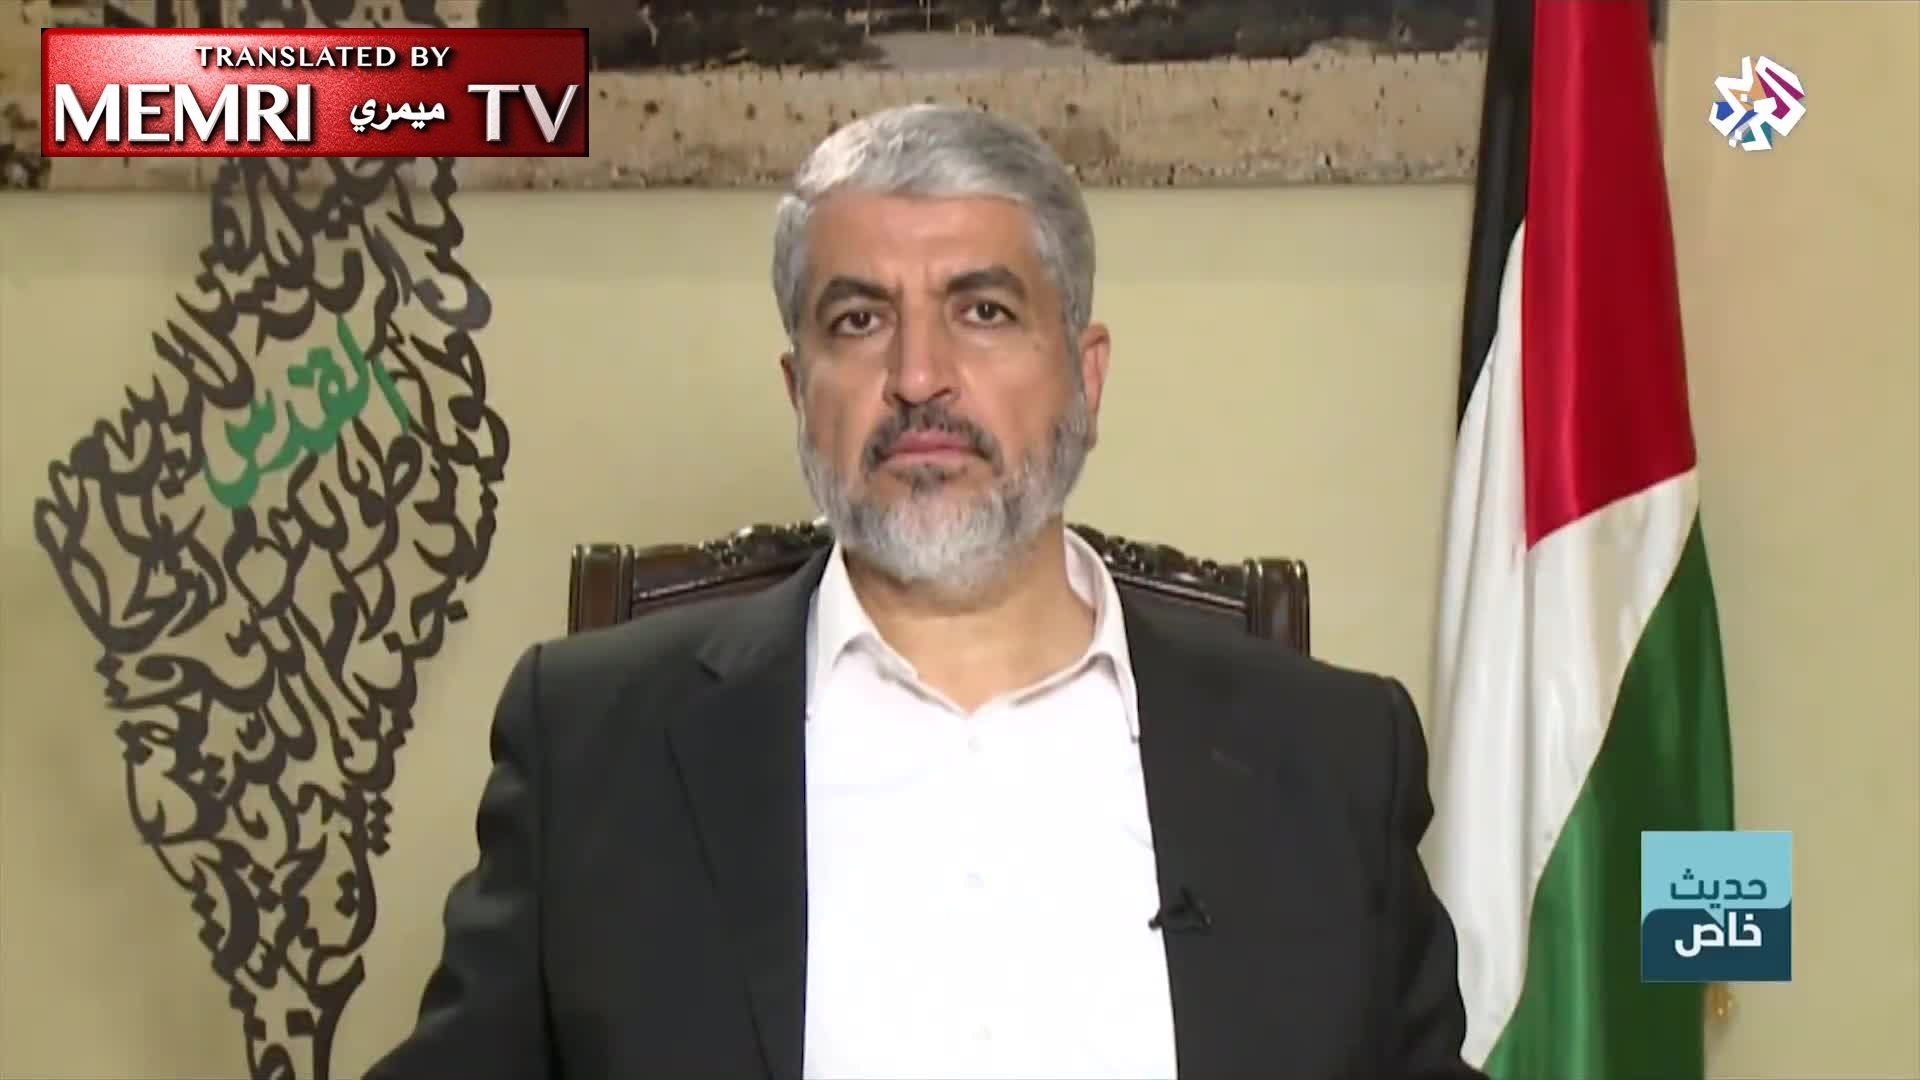 Former Hamas Political Bureau Chief Khaled Mash'al: We Are Ready for All Types of Armed and Popular Resistance